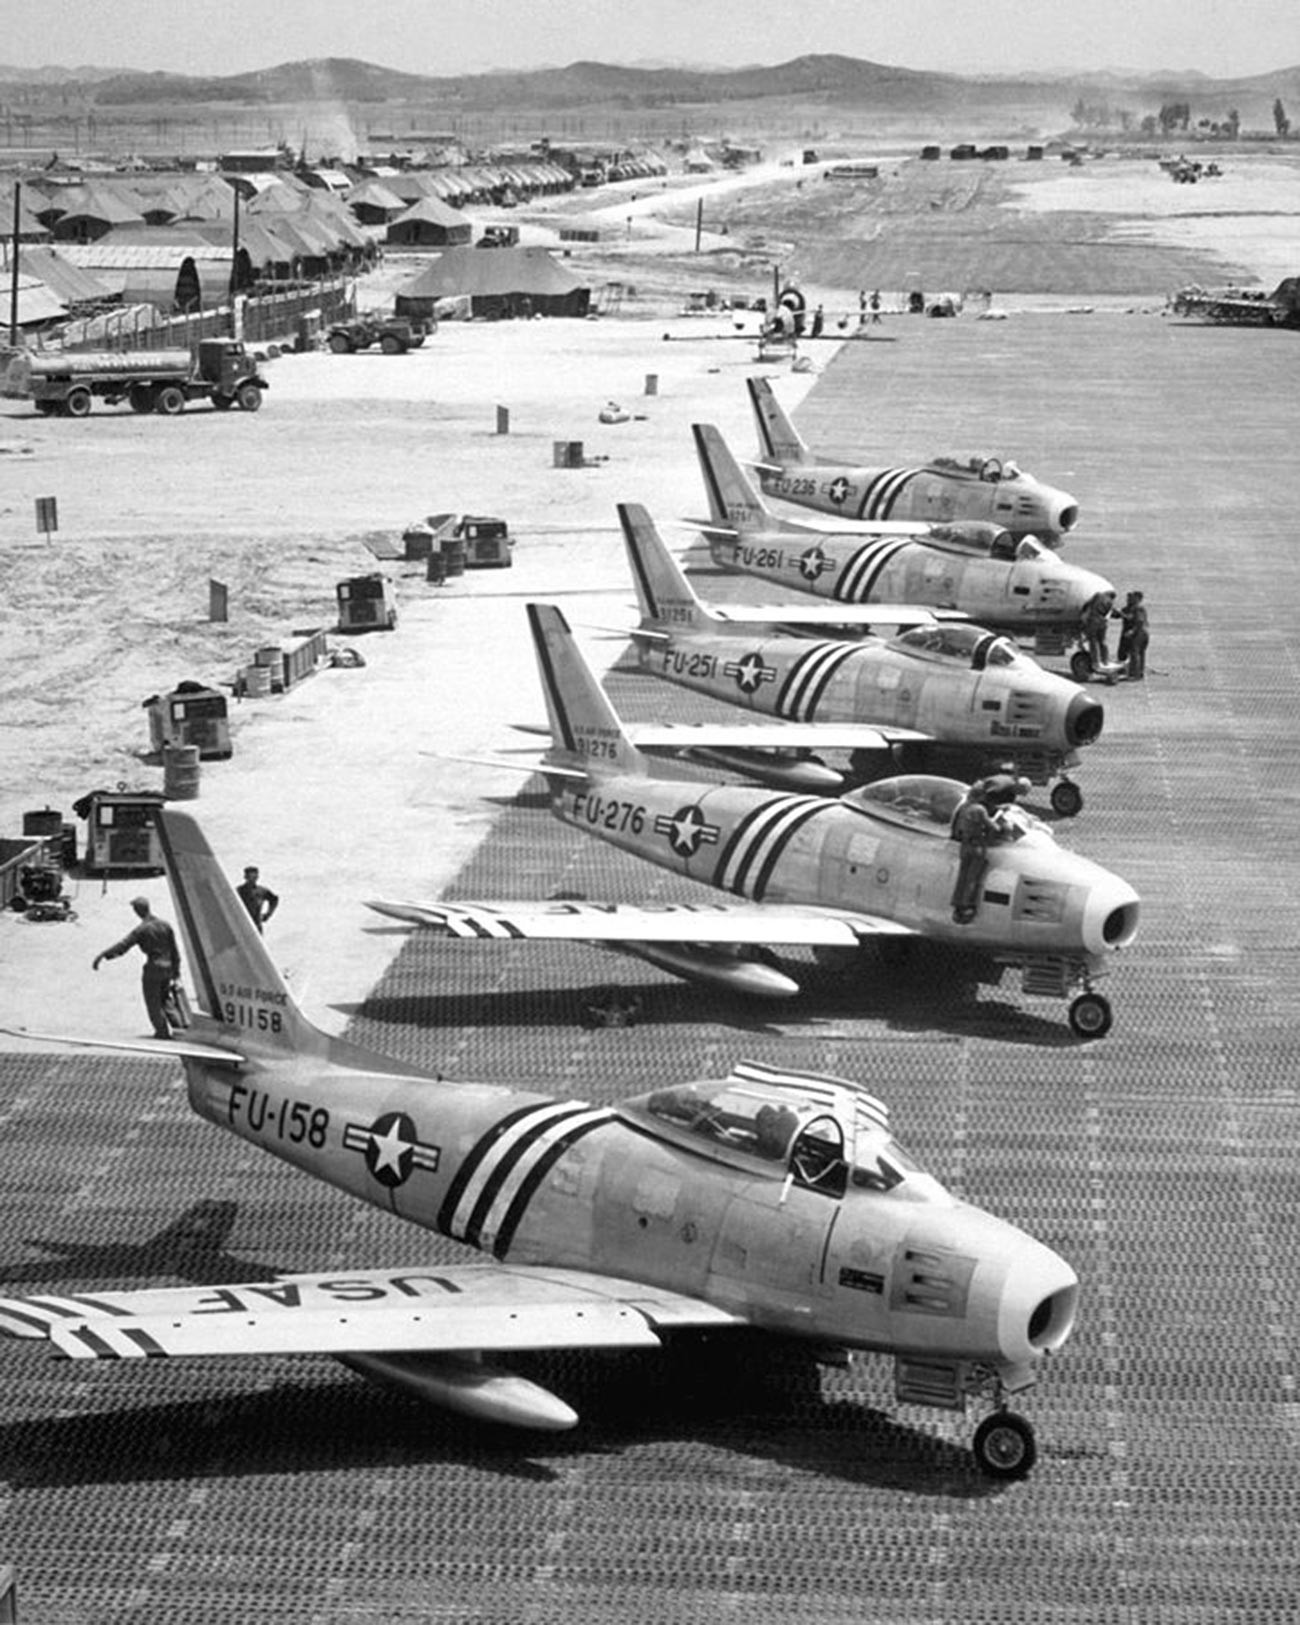 View of F-86 airplanes on the flight line getting ready for combat.